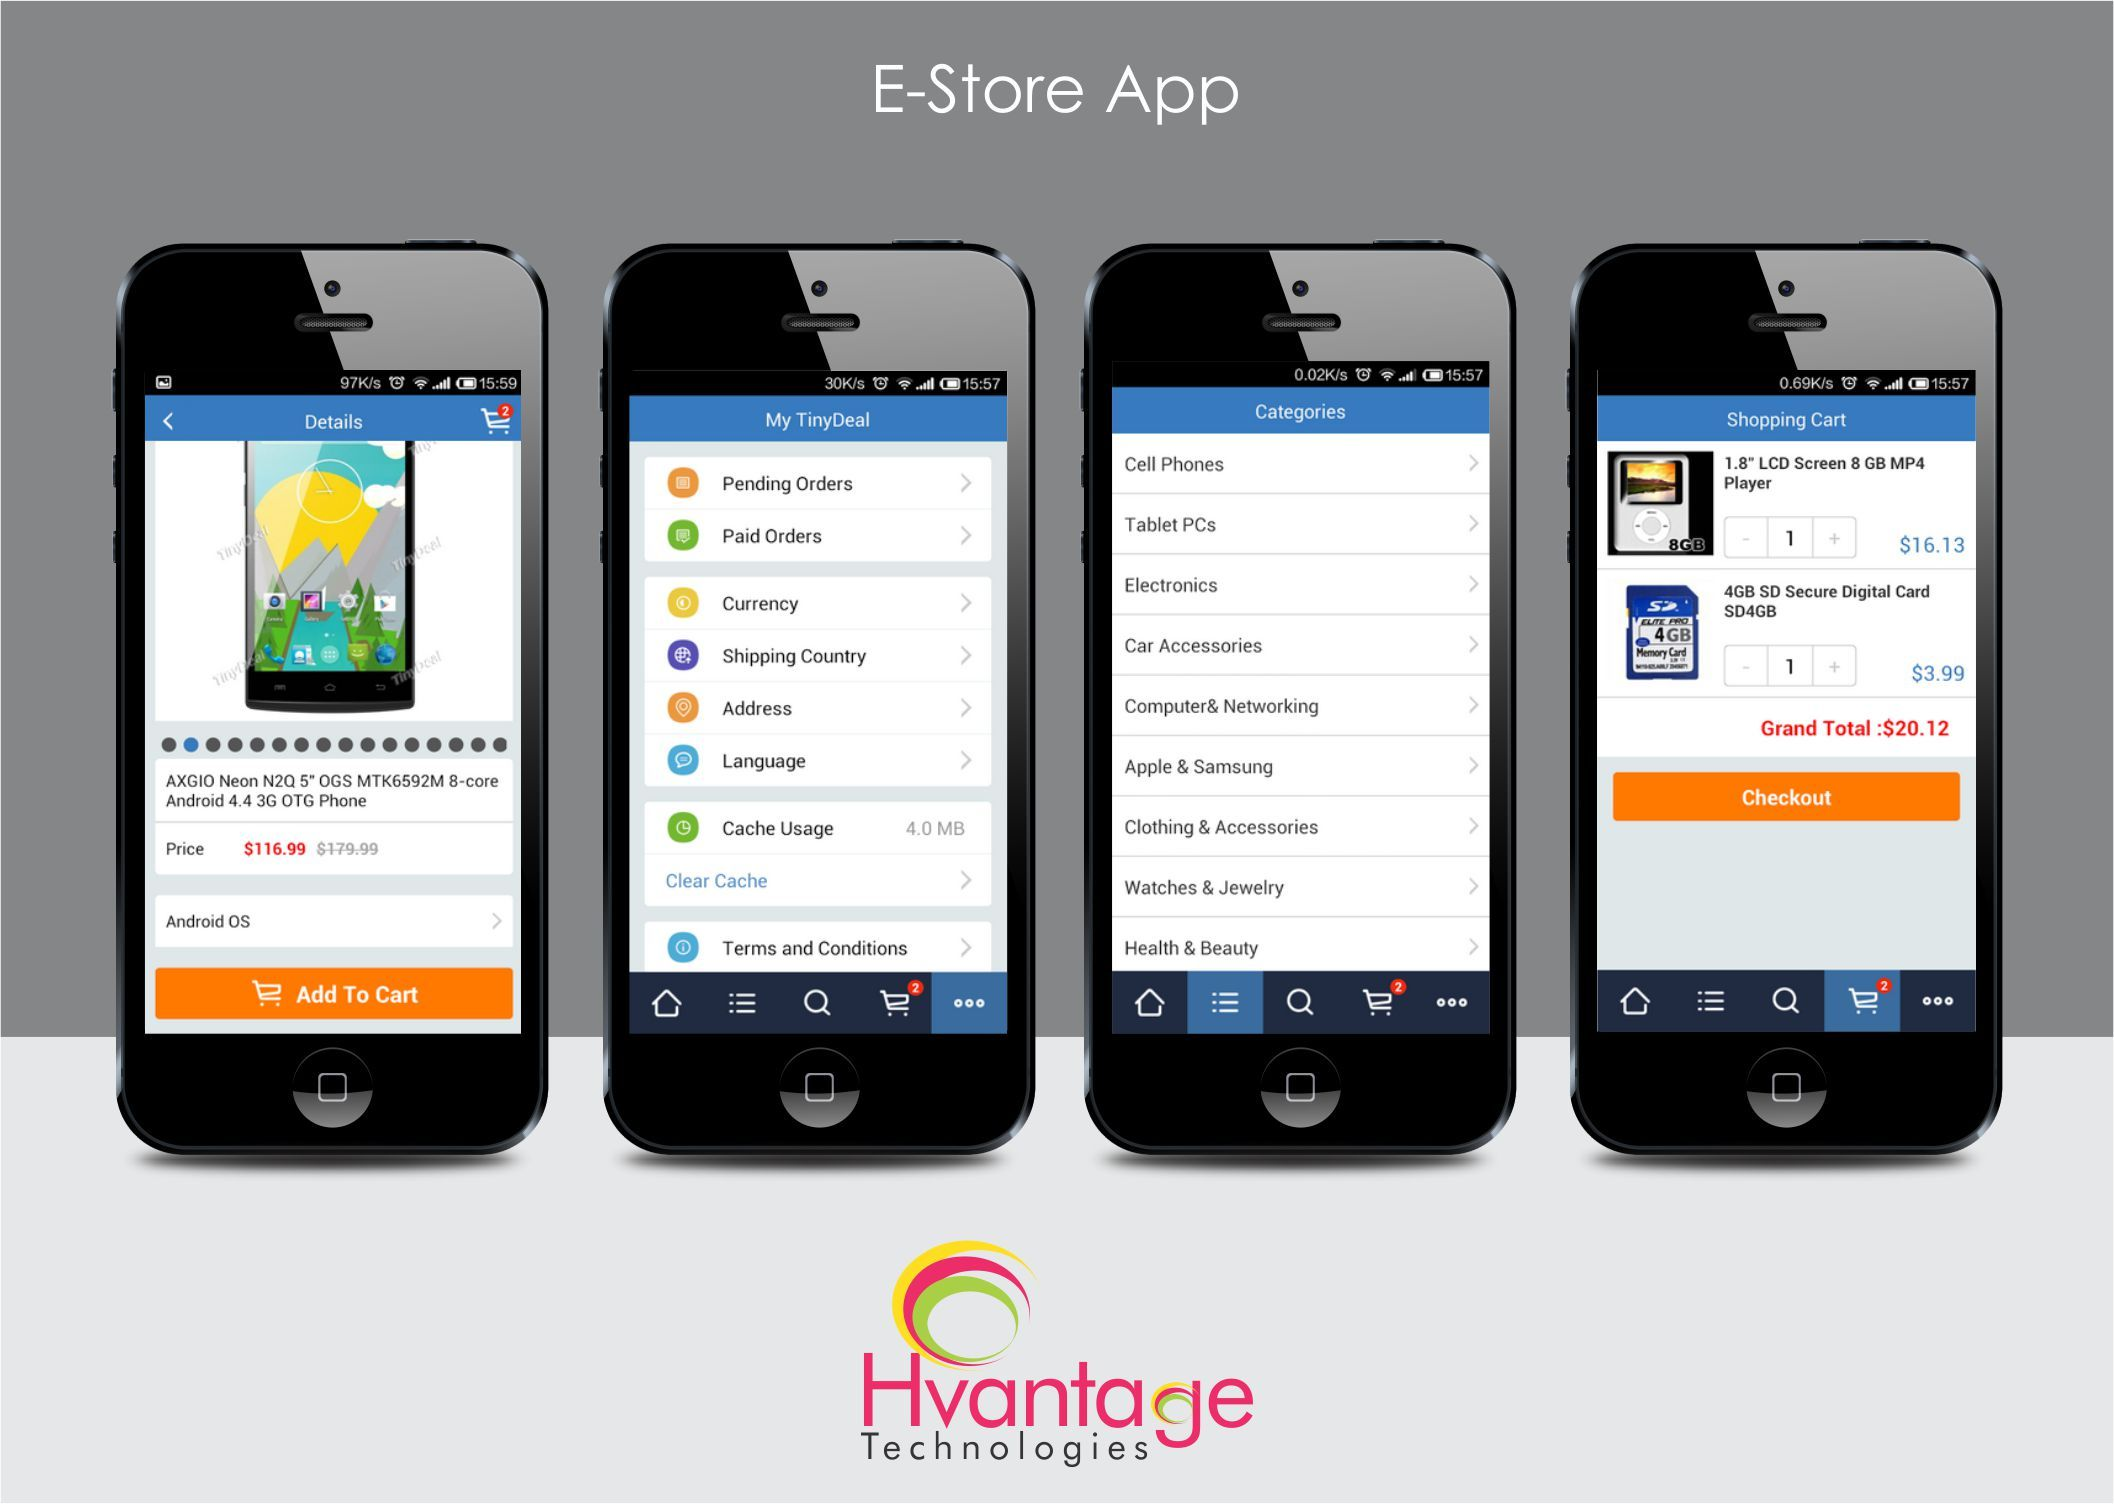 Online shopping app comprises wide array of products